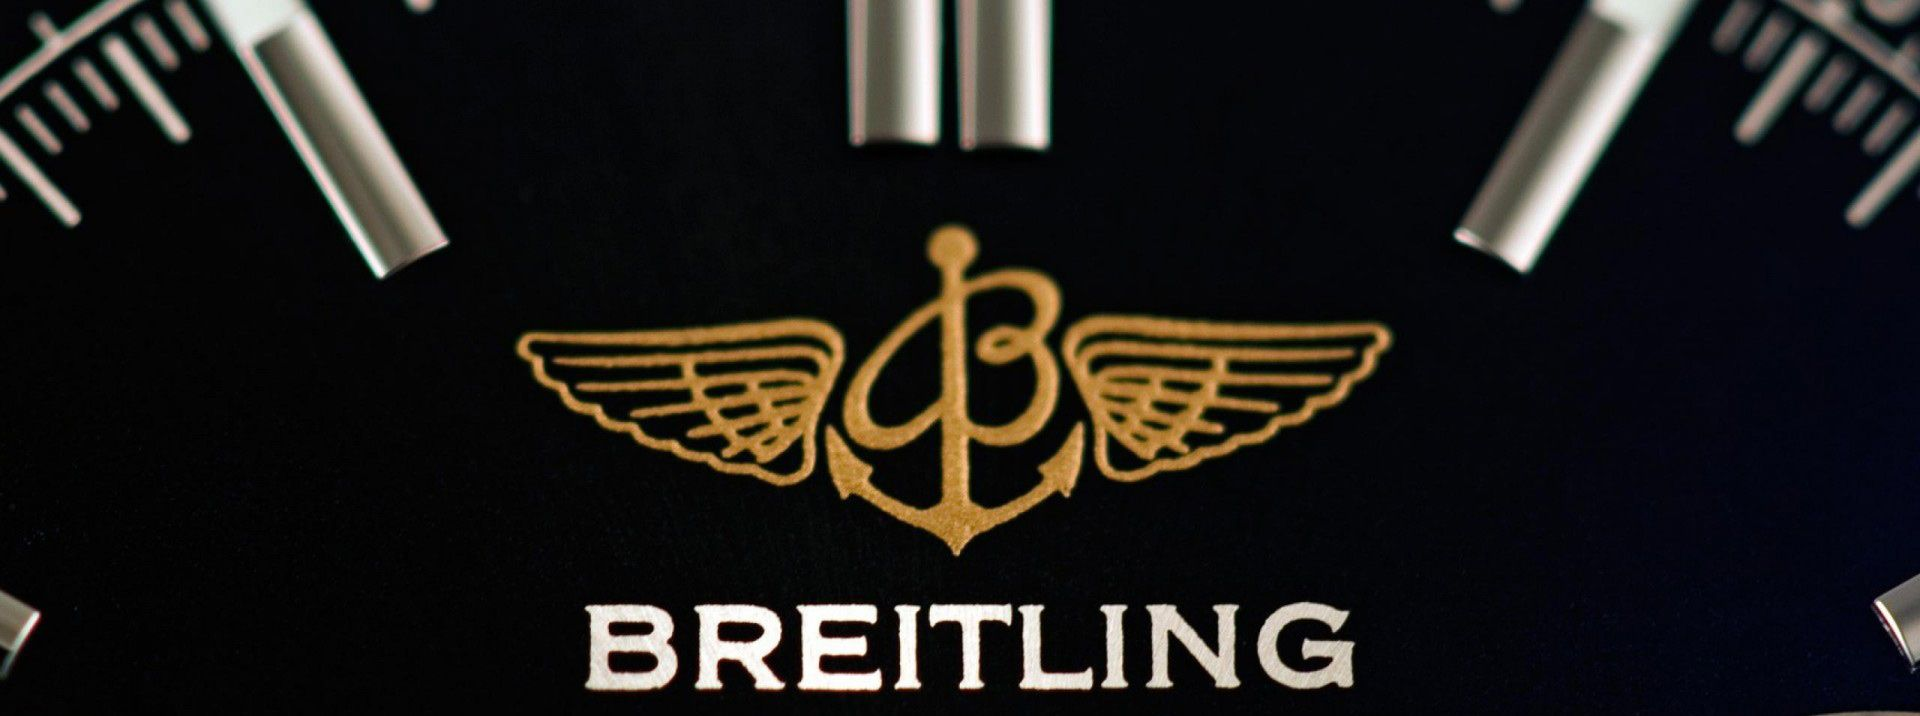 Top 10 Most Expensive Breitling Watch Models